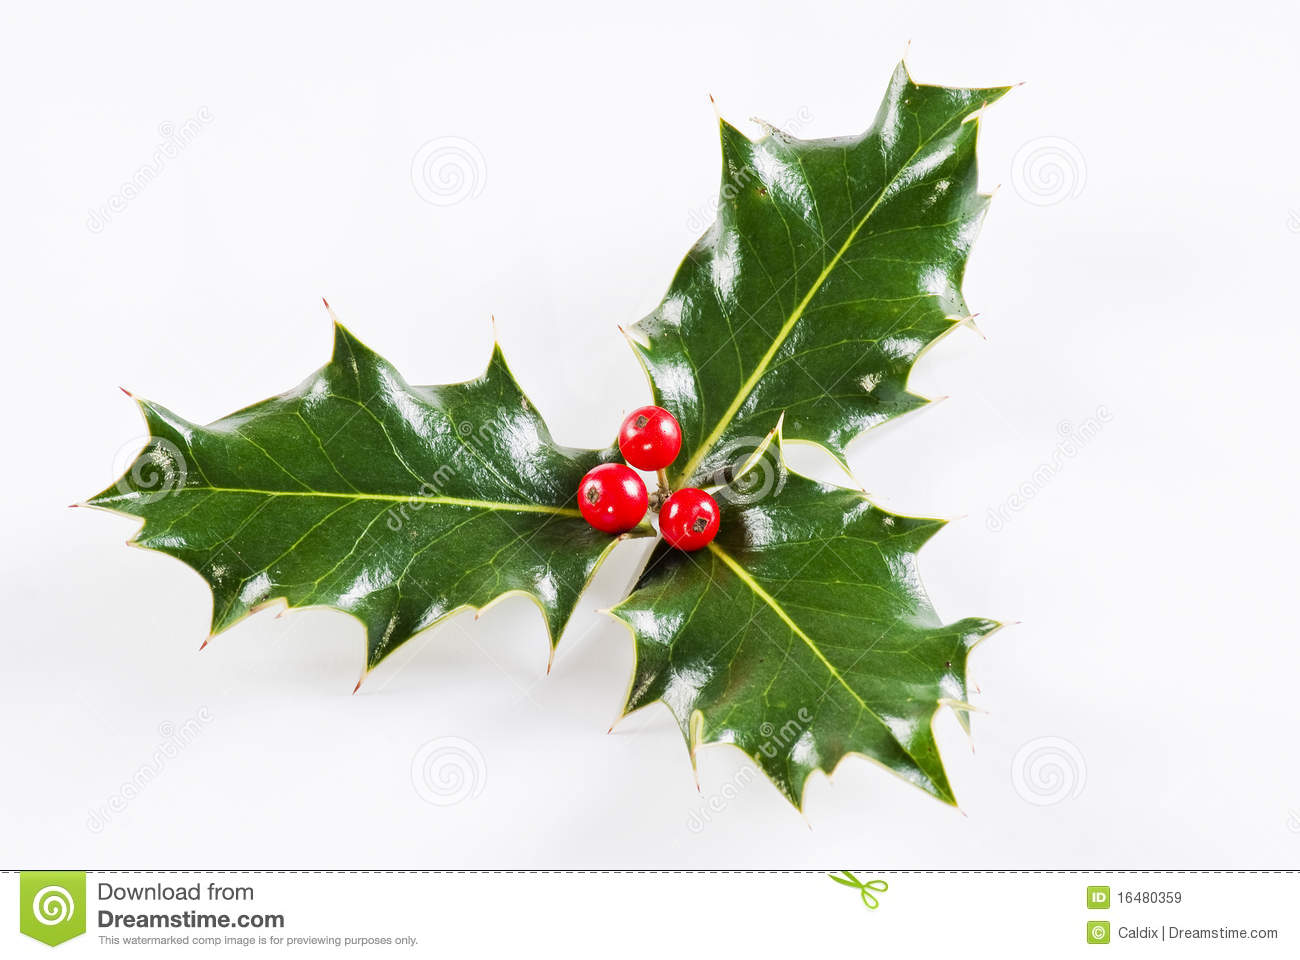 Holly leaf sprig with red berries, isolated over white background.